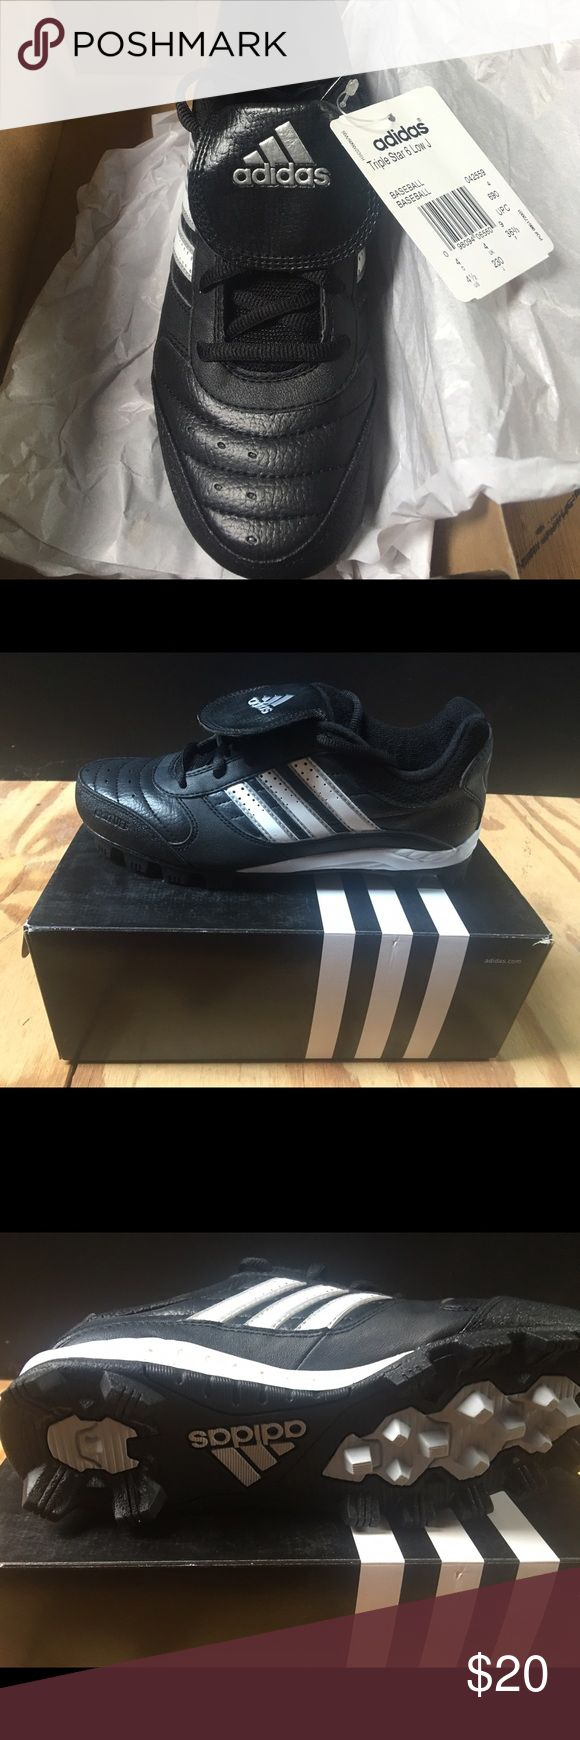 New Boys Adidas Baseball Cleats New boys Adidas baseball cleats in size 4.5. Great deal! Cross-Posted adidas Shoes